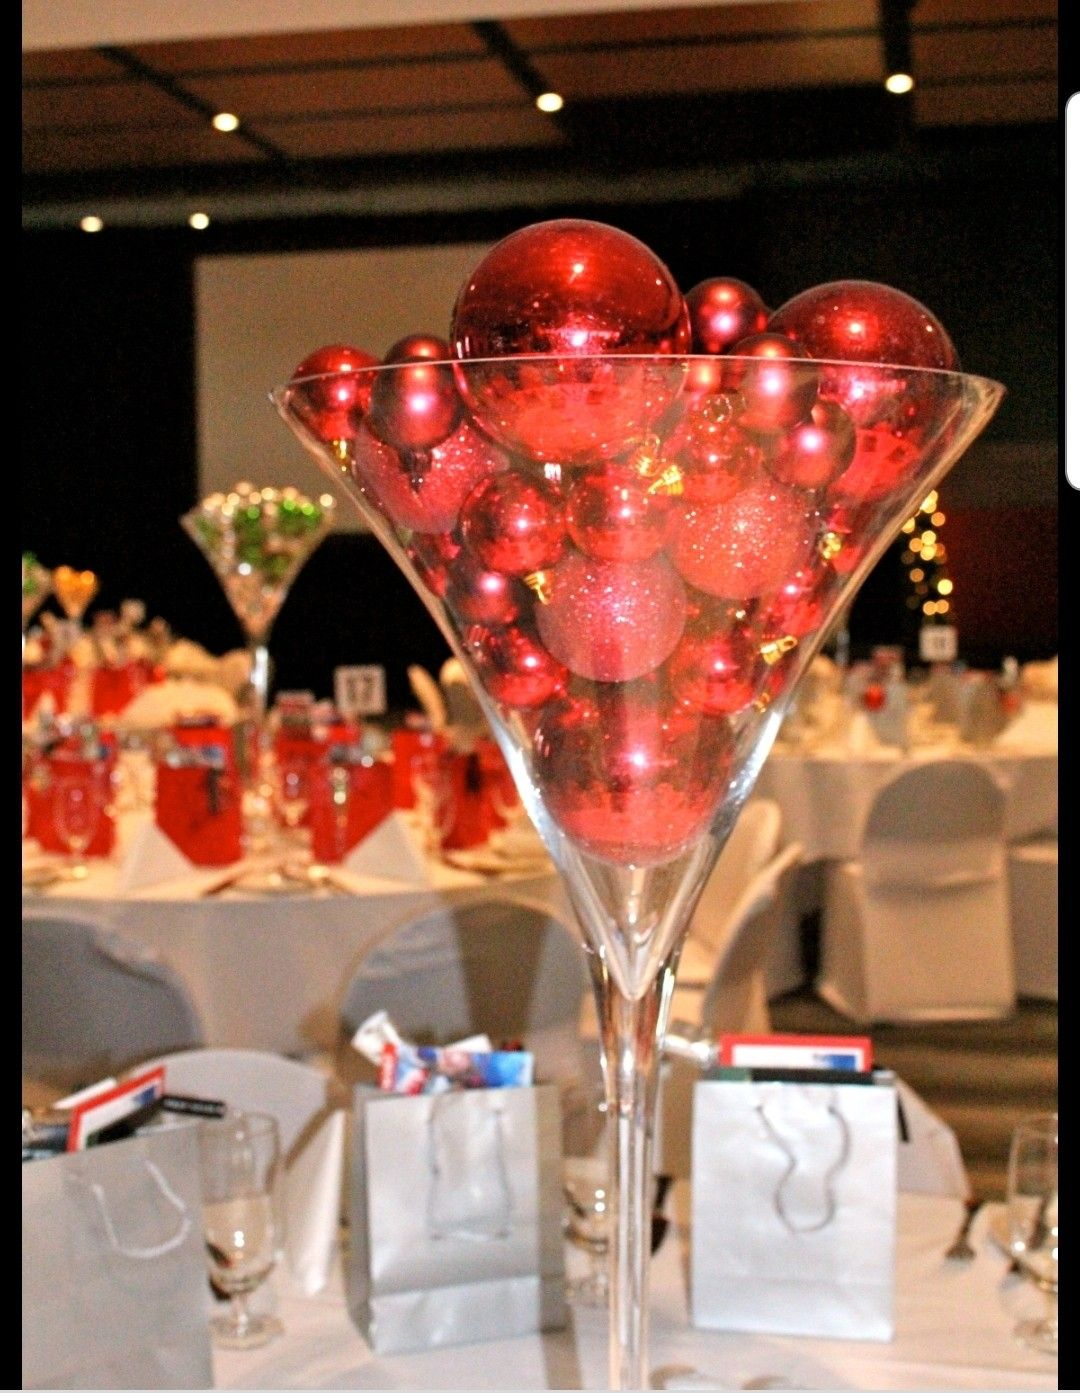 Pin By Lisa Kleinhelter On Christmas Party Christmas Party Centerpieces Holiday Party Decorations Holiday Party Centerpieces